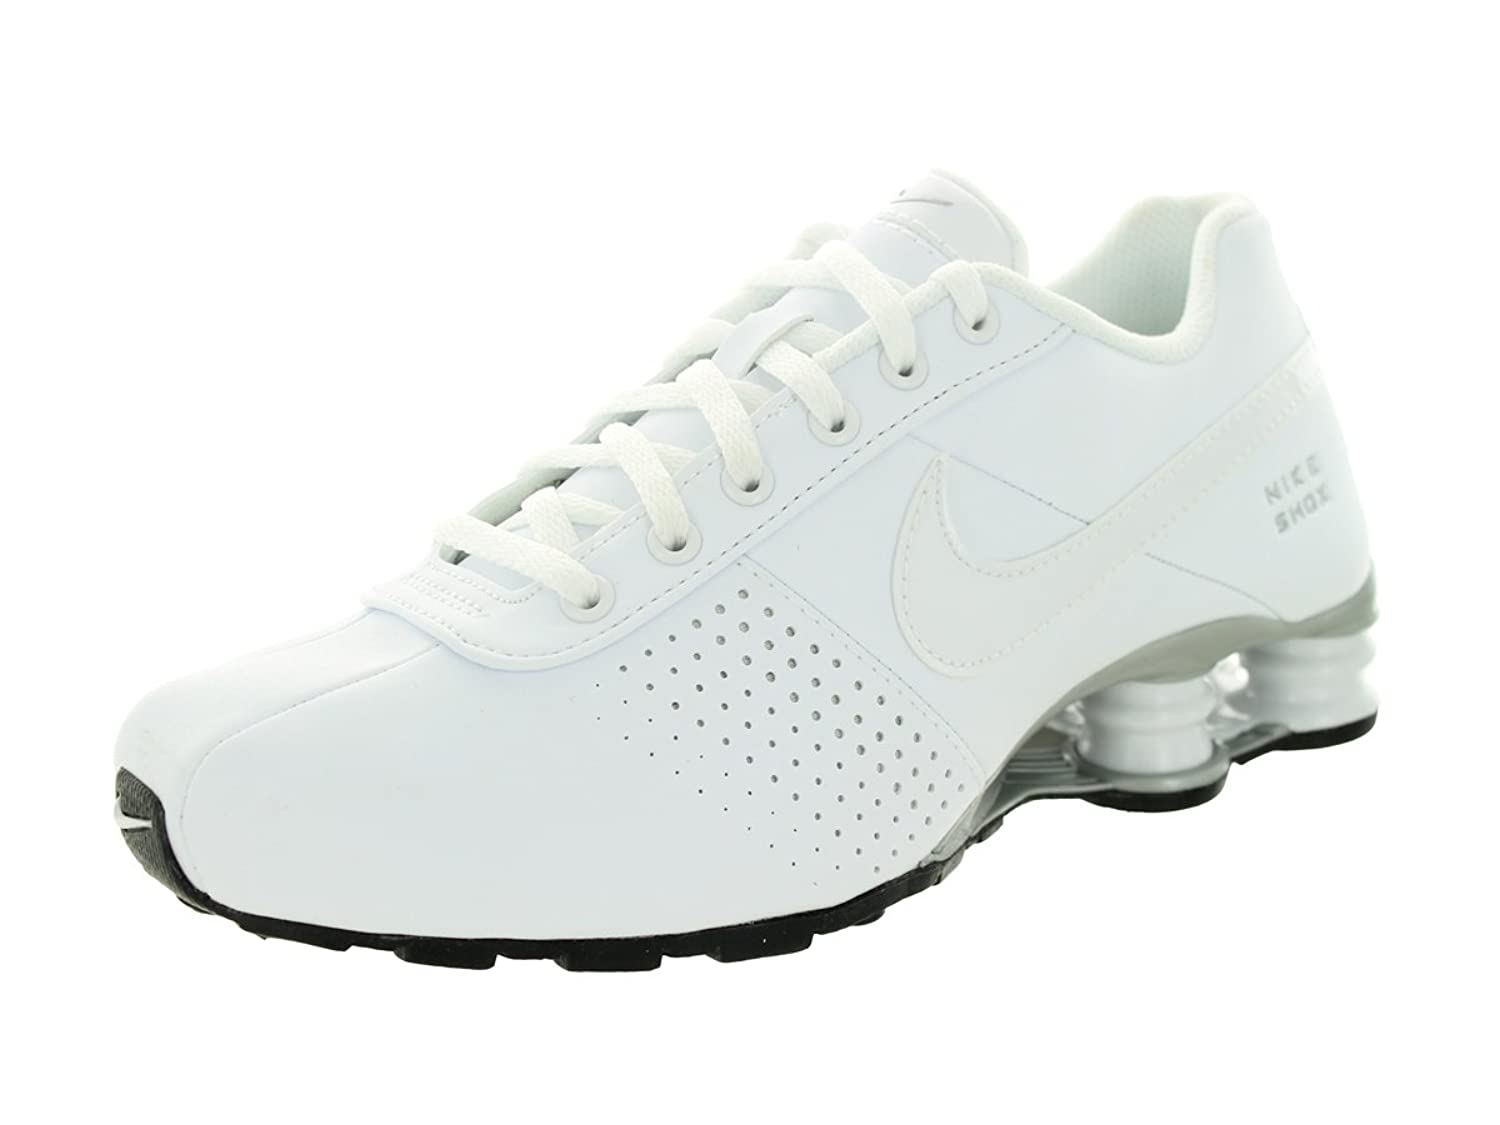 4fdeb44624b8 ... promo code for deliver shox nike deliver shox nike kids 1uunz 648f4  487d5